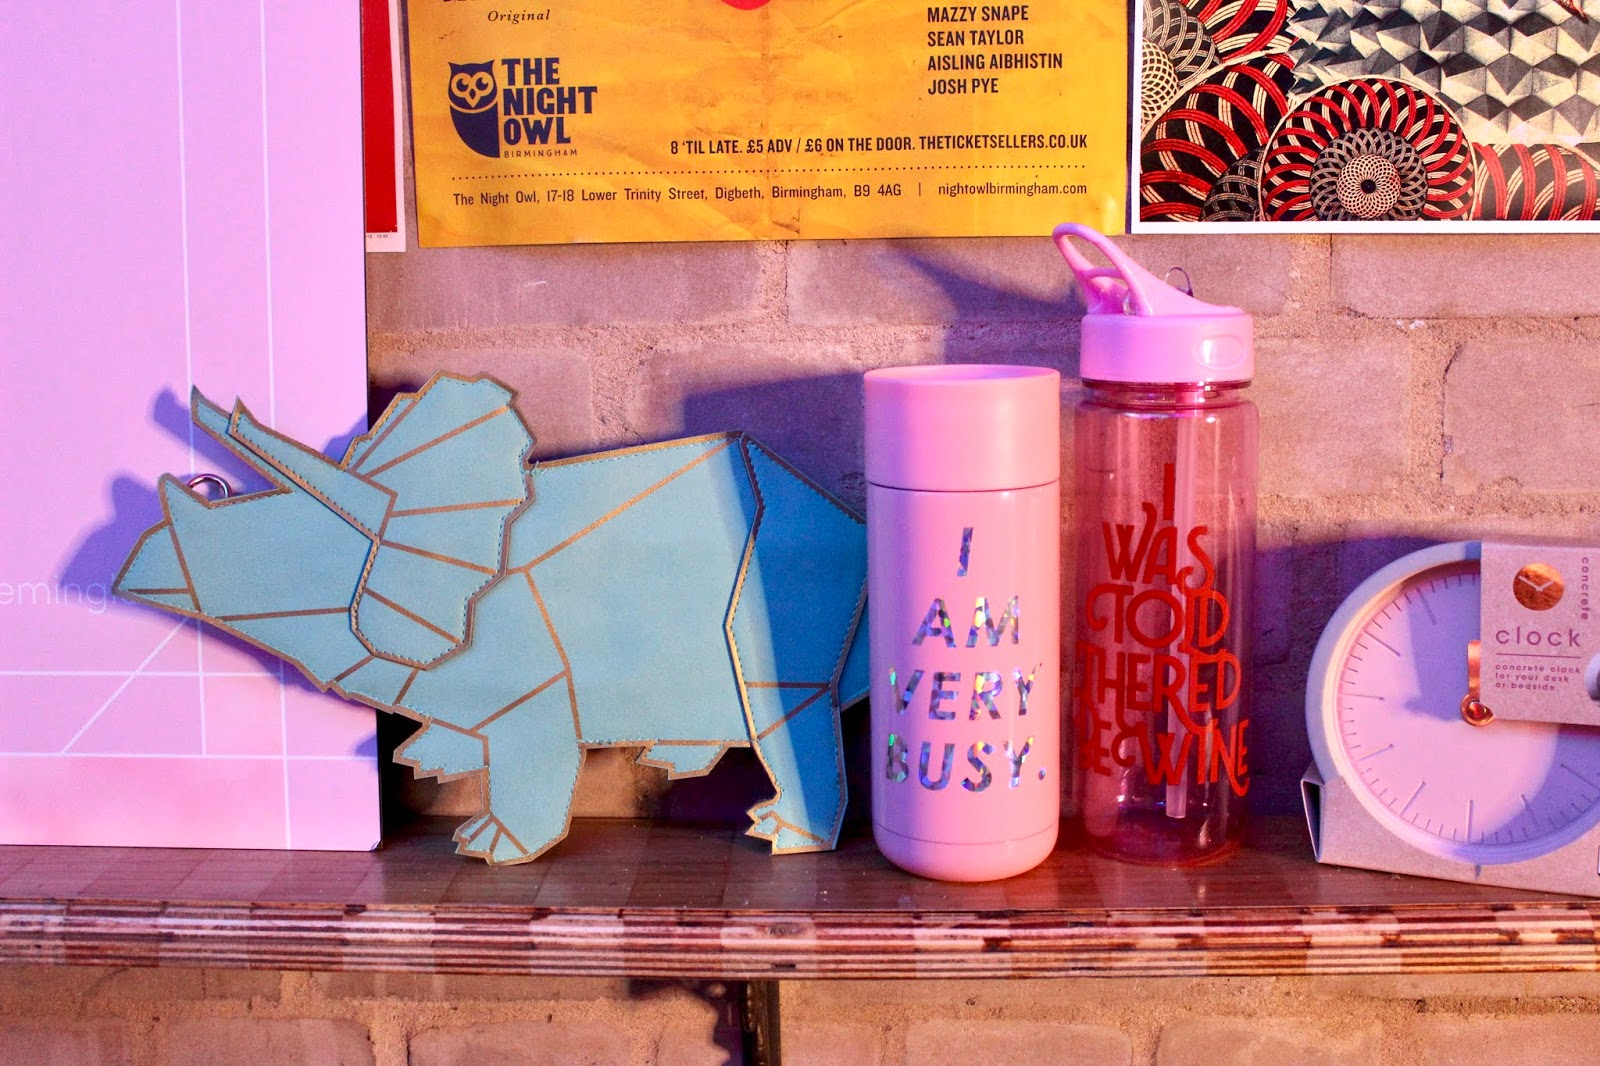 Dinosaur plaque and 'I am very busy' water bottle